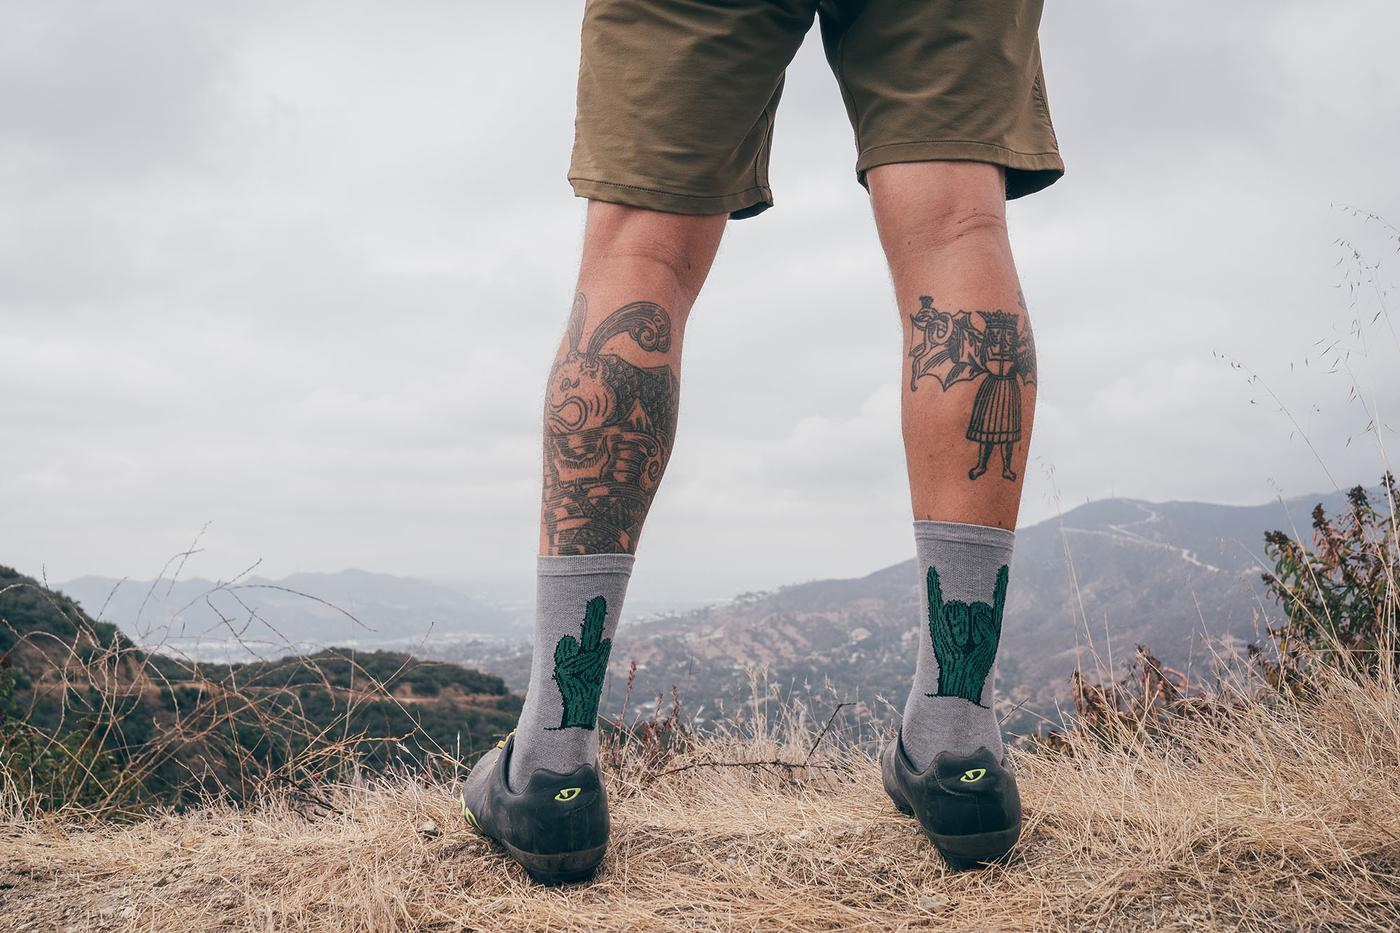 Don't Sleep on the DeFeet and Radavist Howdy Cacti Sock Pack!